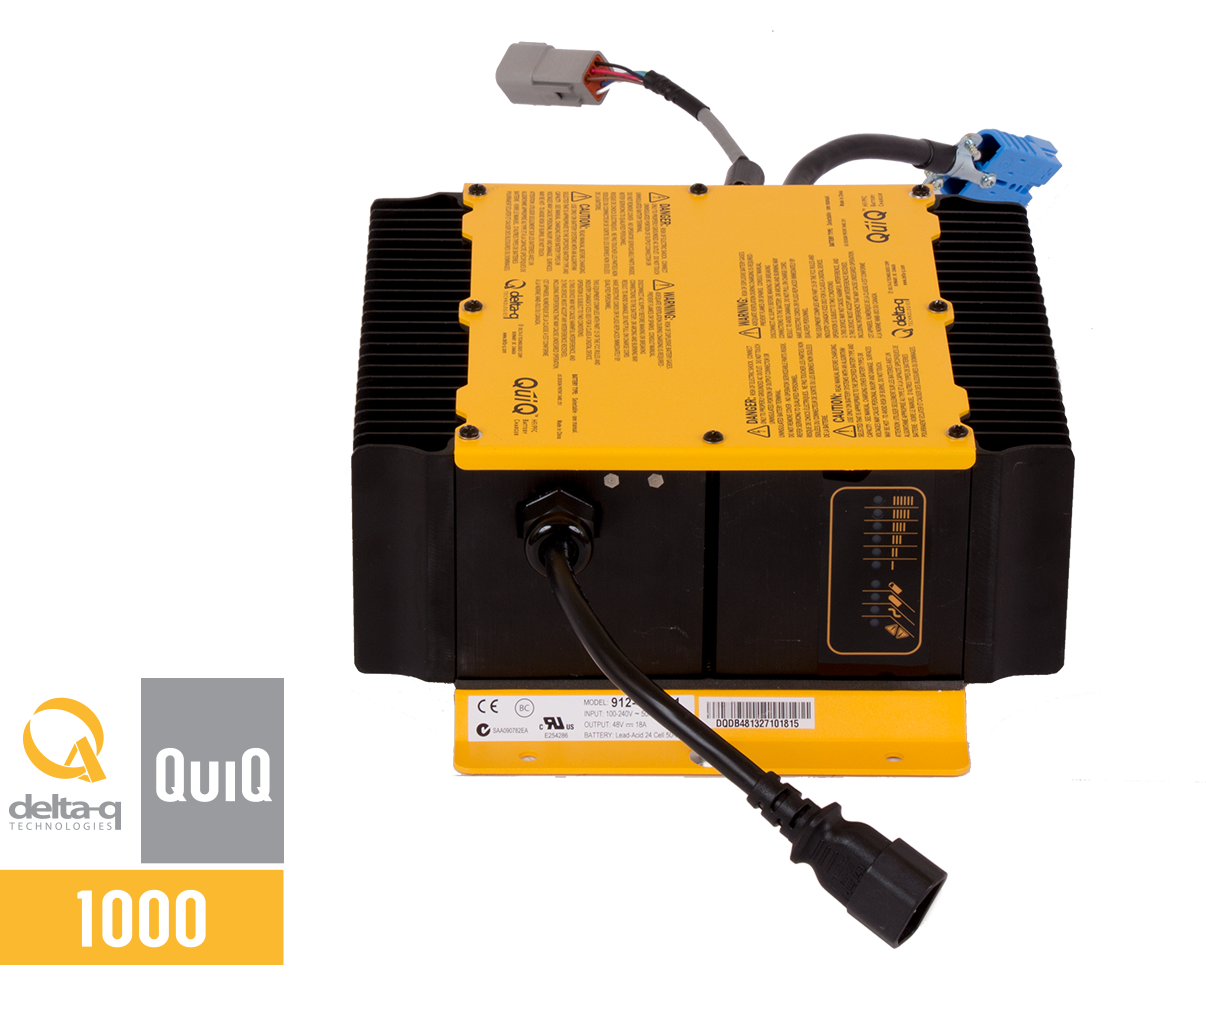 Quiq 1000 Industrial Battery Charger Delta Q Technologies 25 Liion Circuit Electronic Projects Technical Specs